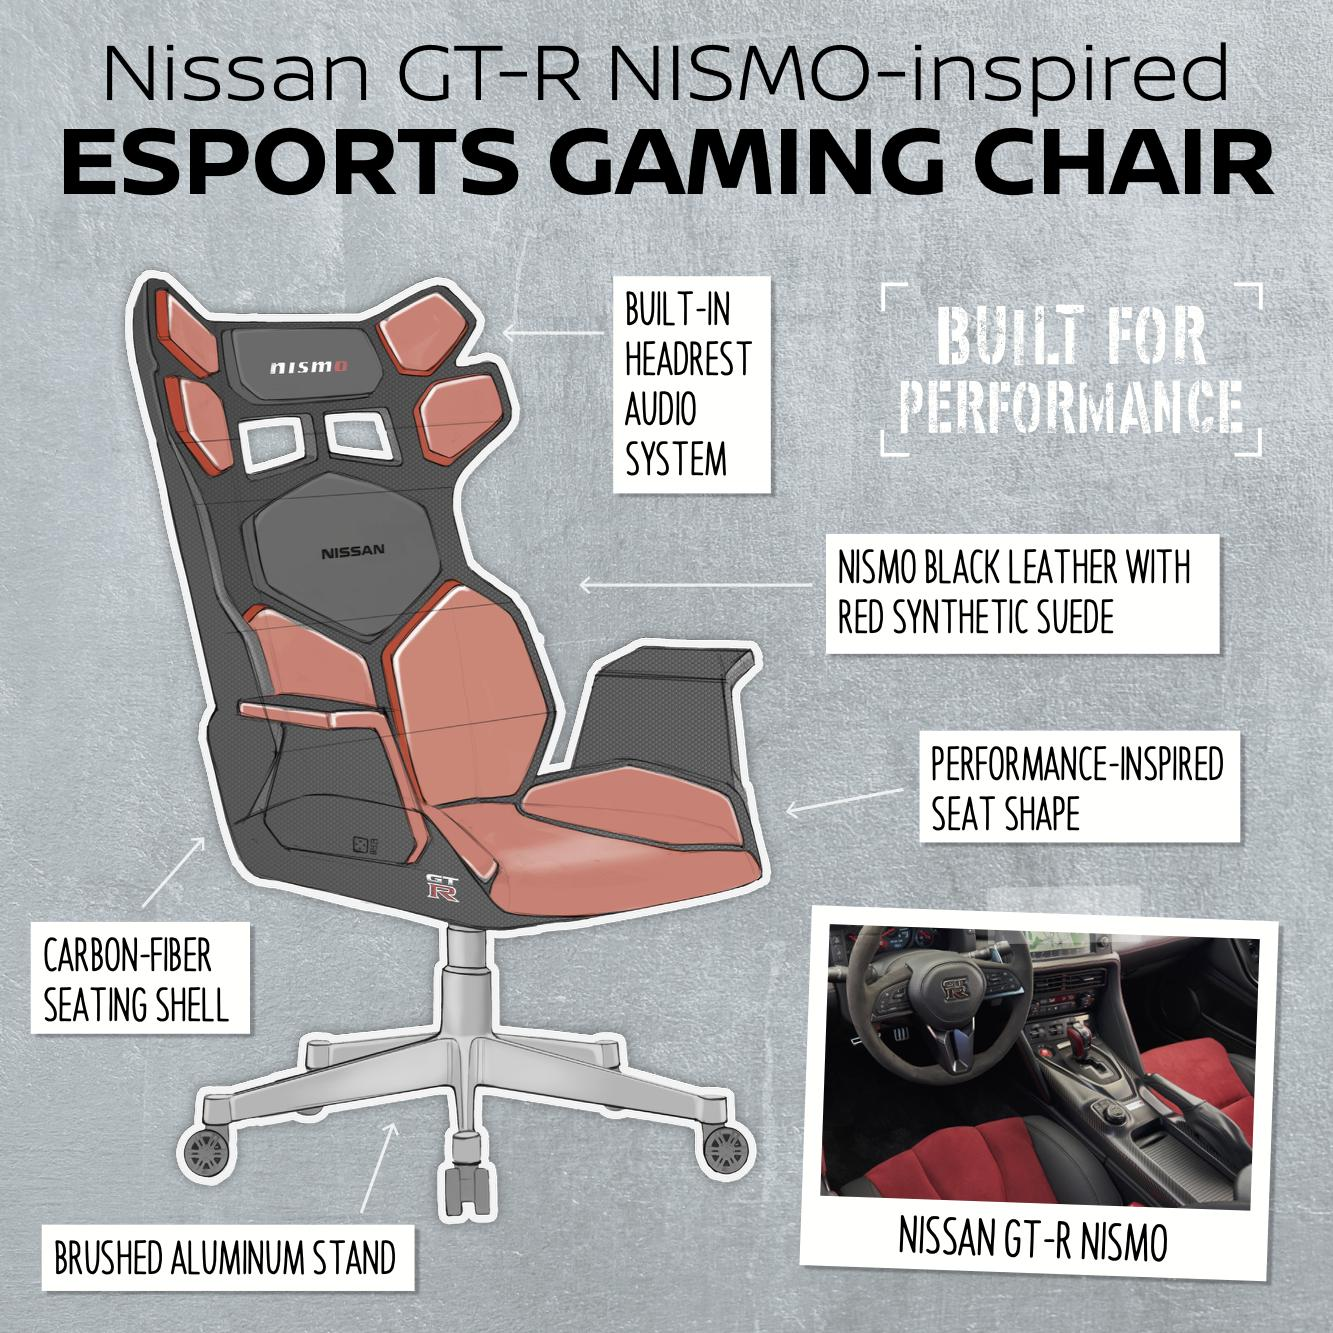 Nissan eSport chair